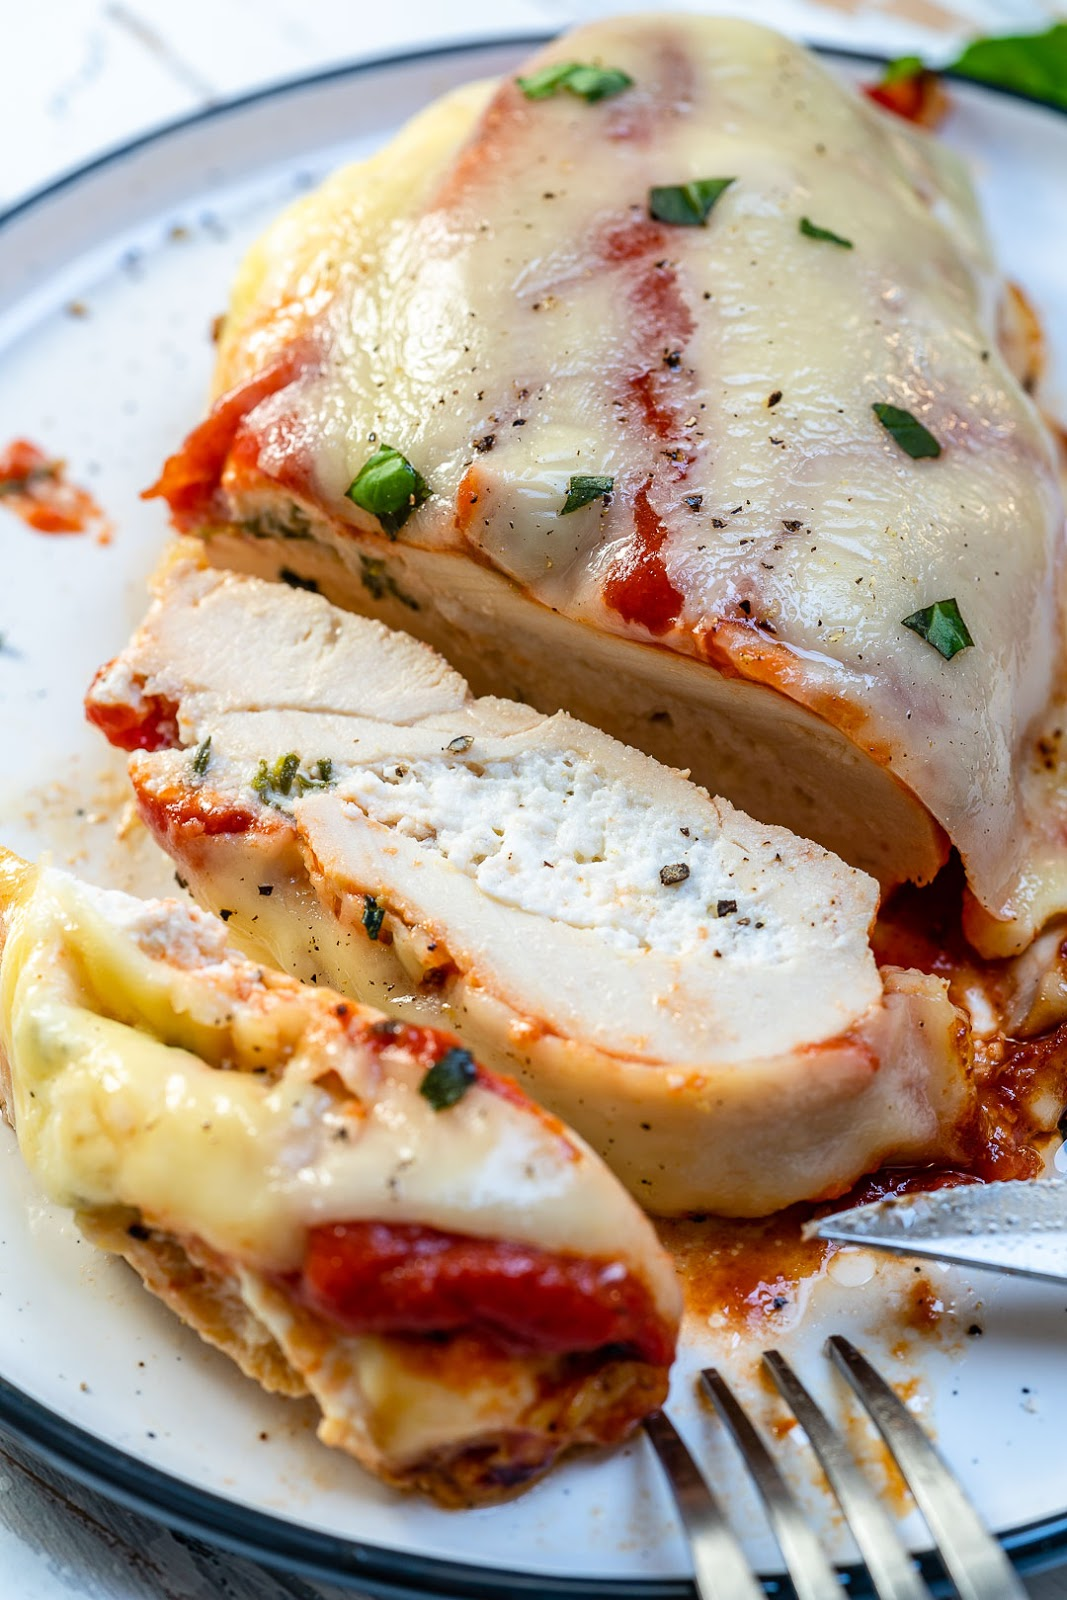 Carb Free Lasagna Stuffed Chicken Breasts for Clean Eating #dinner #familyrecipes #eating #lasagna #lowcarb